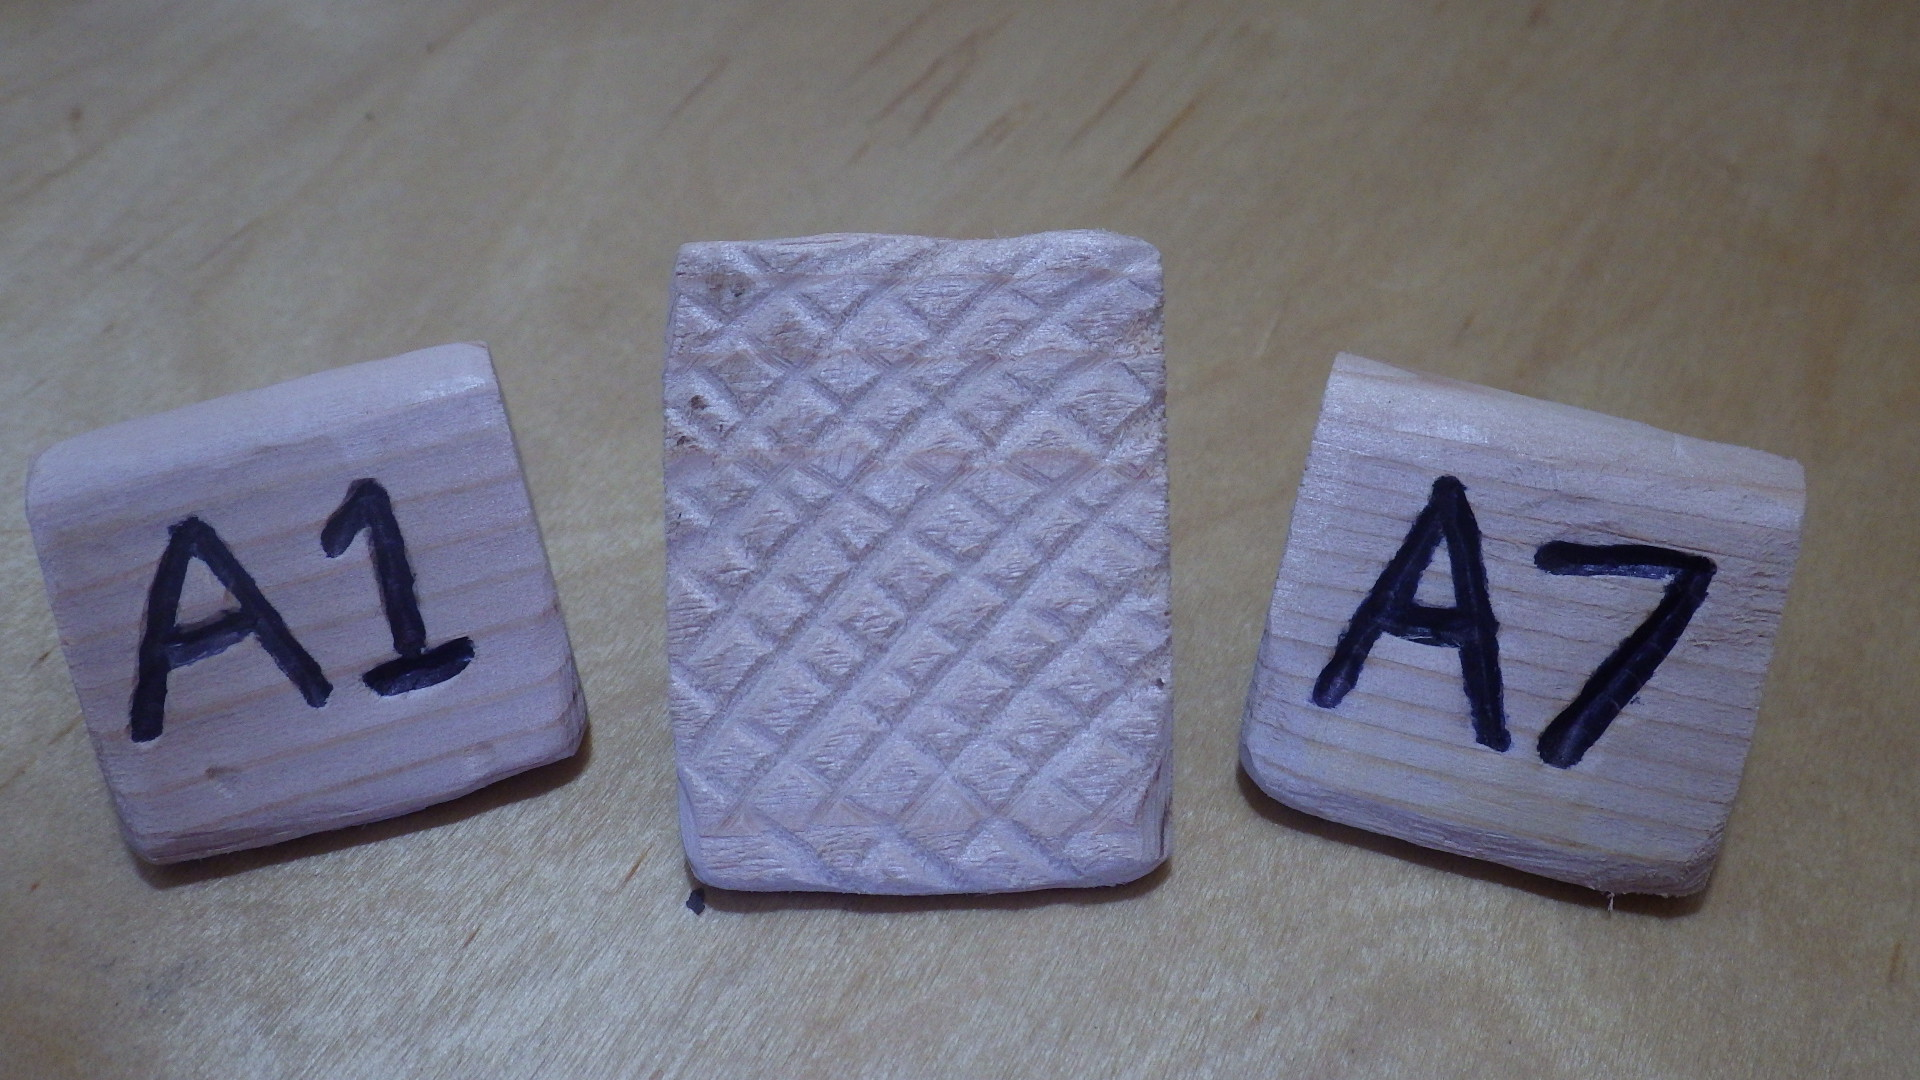 Cedar hat tags showing inset lettering and scoring pattern on bottom